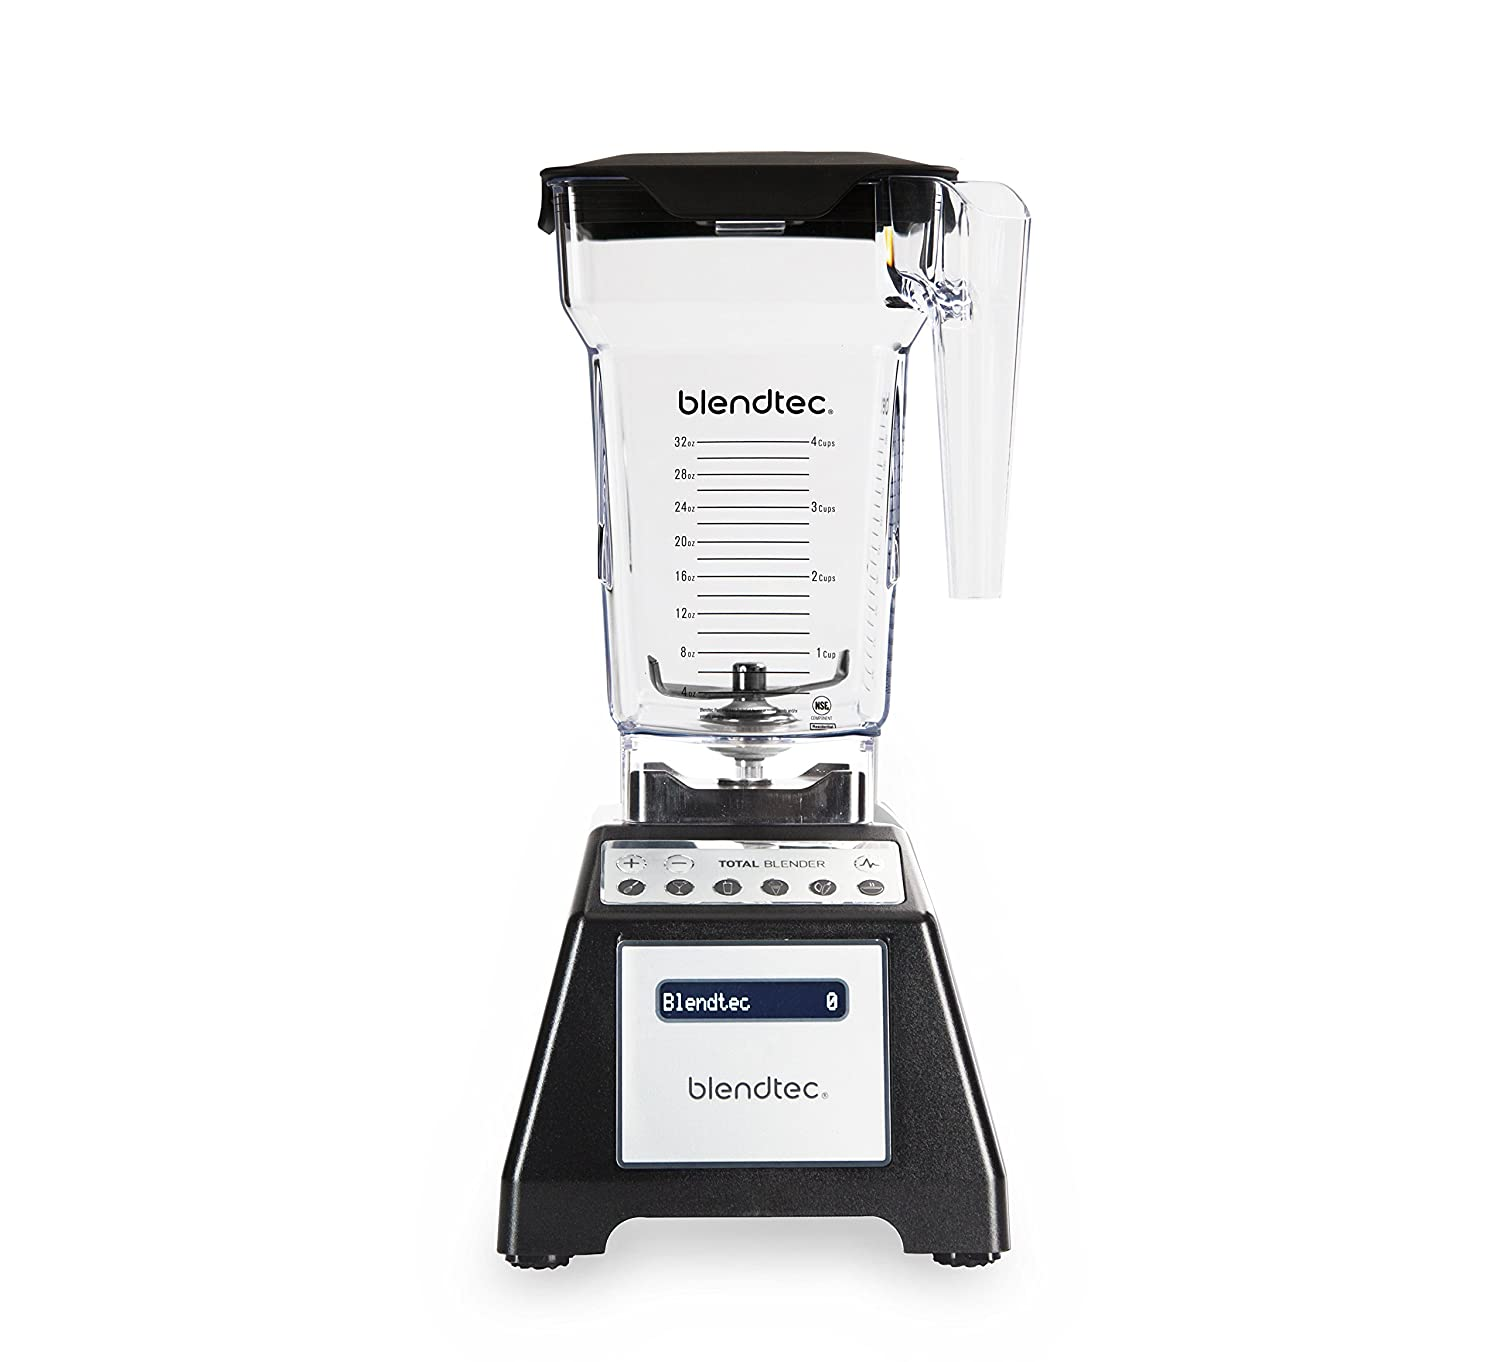 Blendtec Total Classic Original Blender with FourSide Jar (75 oz), Professional-Grade Power, 6 Pre-programmed Cycles, 10-speeds, Black Blendtec Fine Living Products TB-621-20